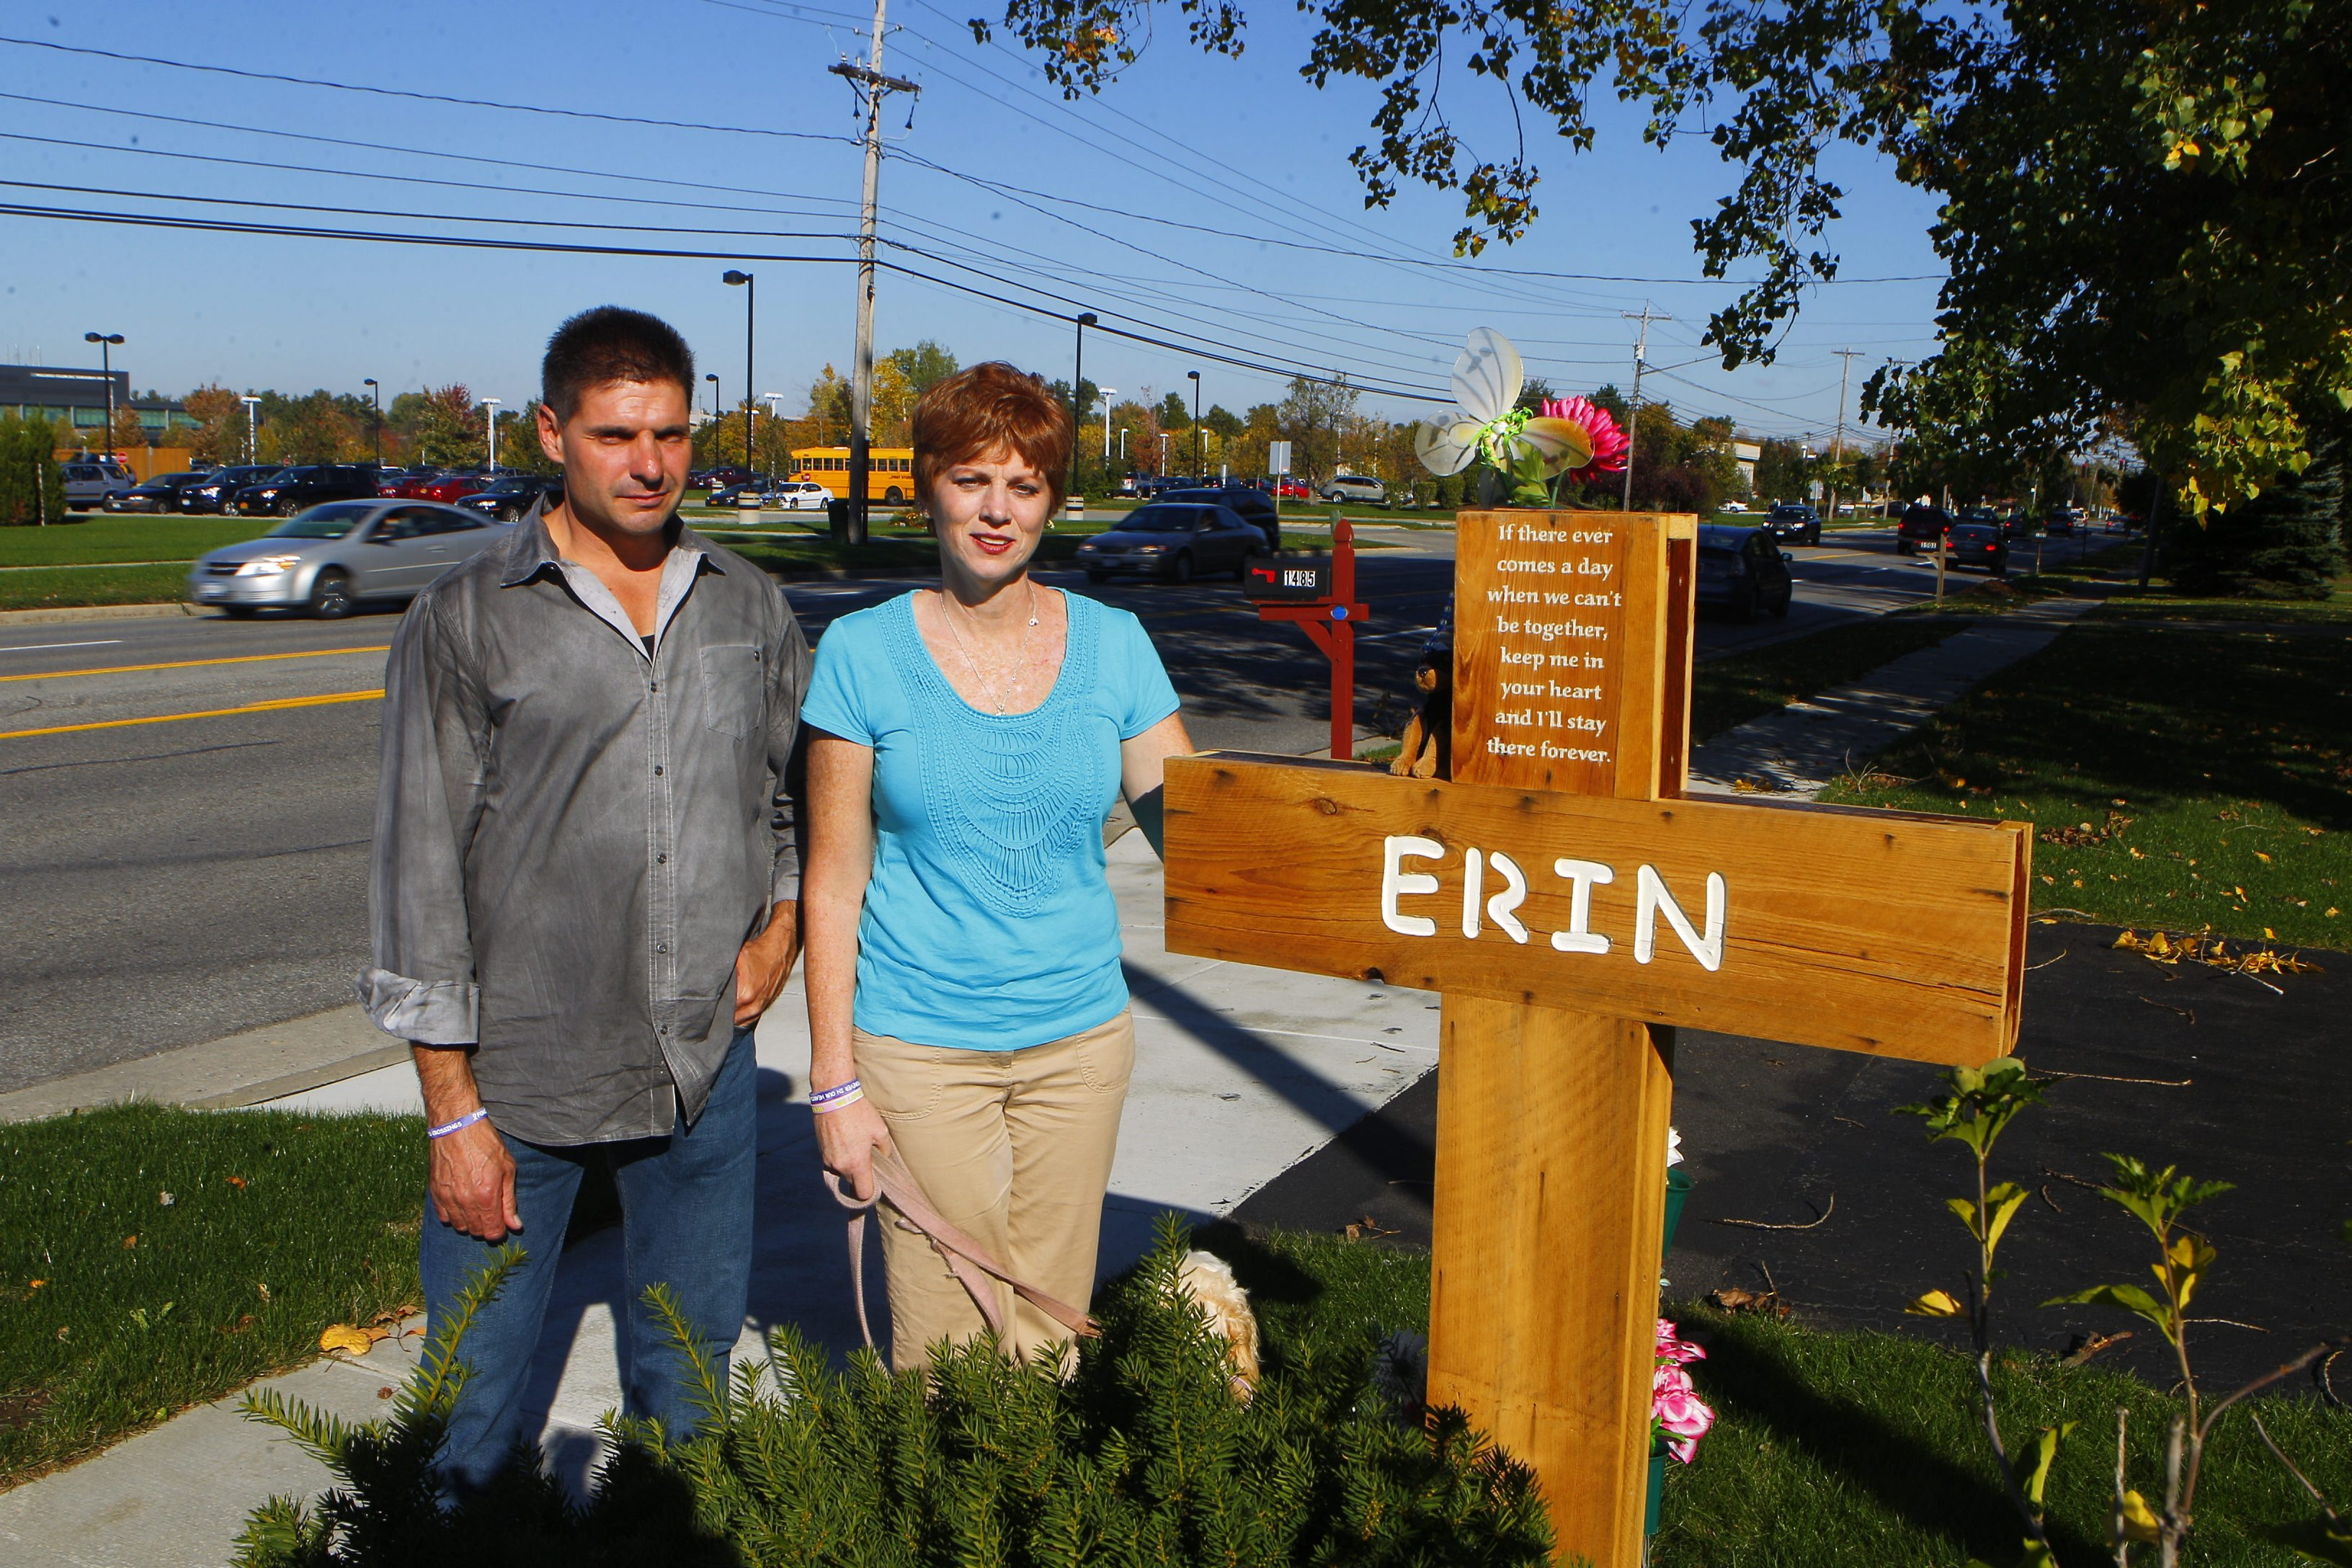 Mary and Jerry Suszynski, parents of Erin Suszynski, a 13-year-old girl kiilled while crossing Maple Road in Amherst in 2012, called on the town to install crosswalks near playgrounds. They were photographed Oct. 9, 2012.  (Photo by John Hickey / Buffalo News)